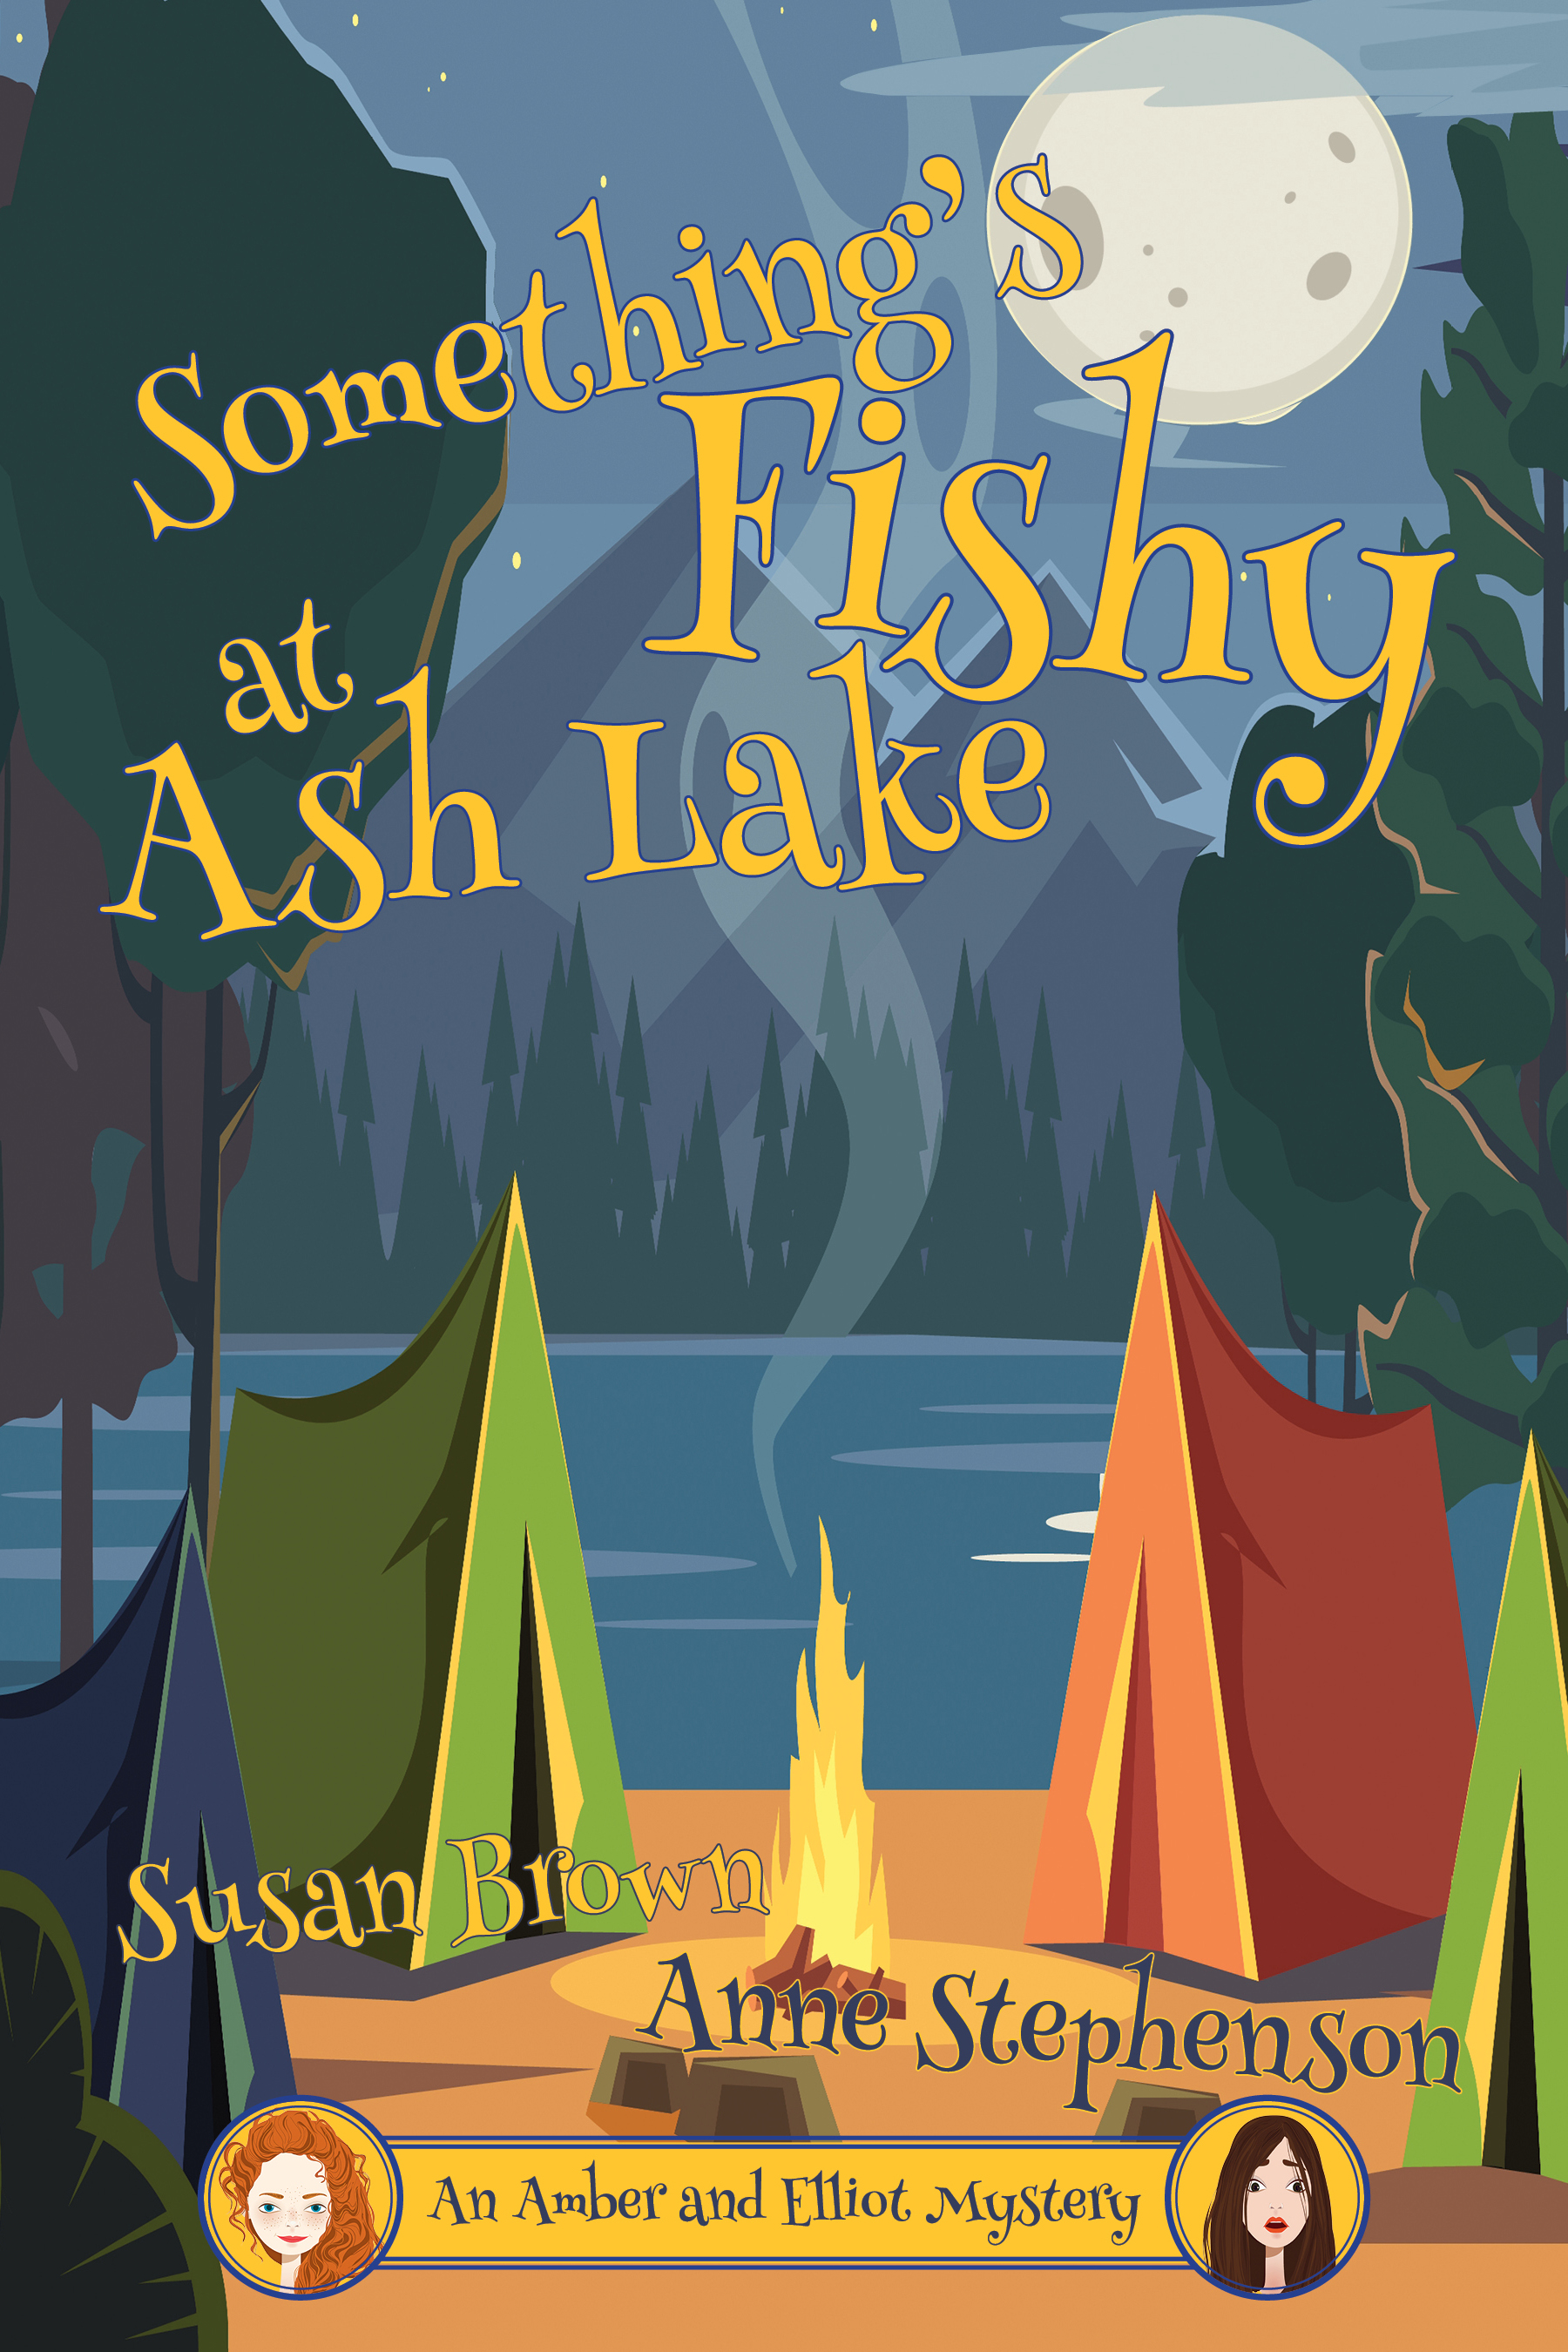 Something's Fishy at Ash Lake  by  Susan Brown  and  Anne Stephenson  Available on Amazon as a  paperback  and  Kindle , as well as other ebook platforms!